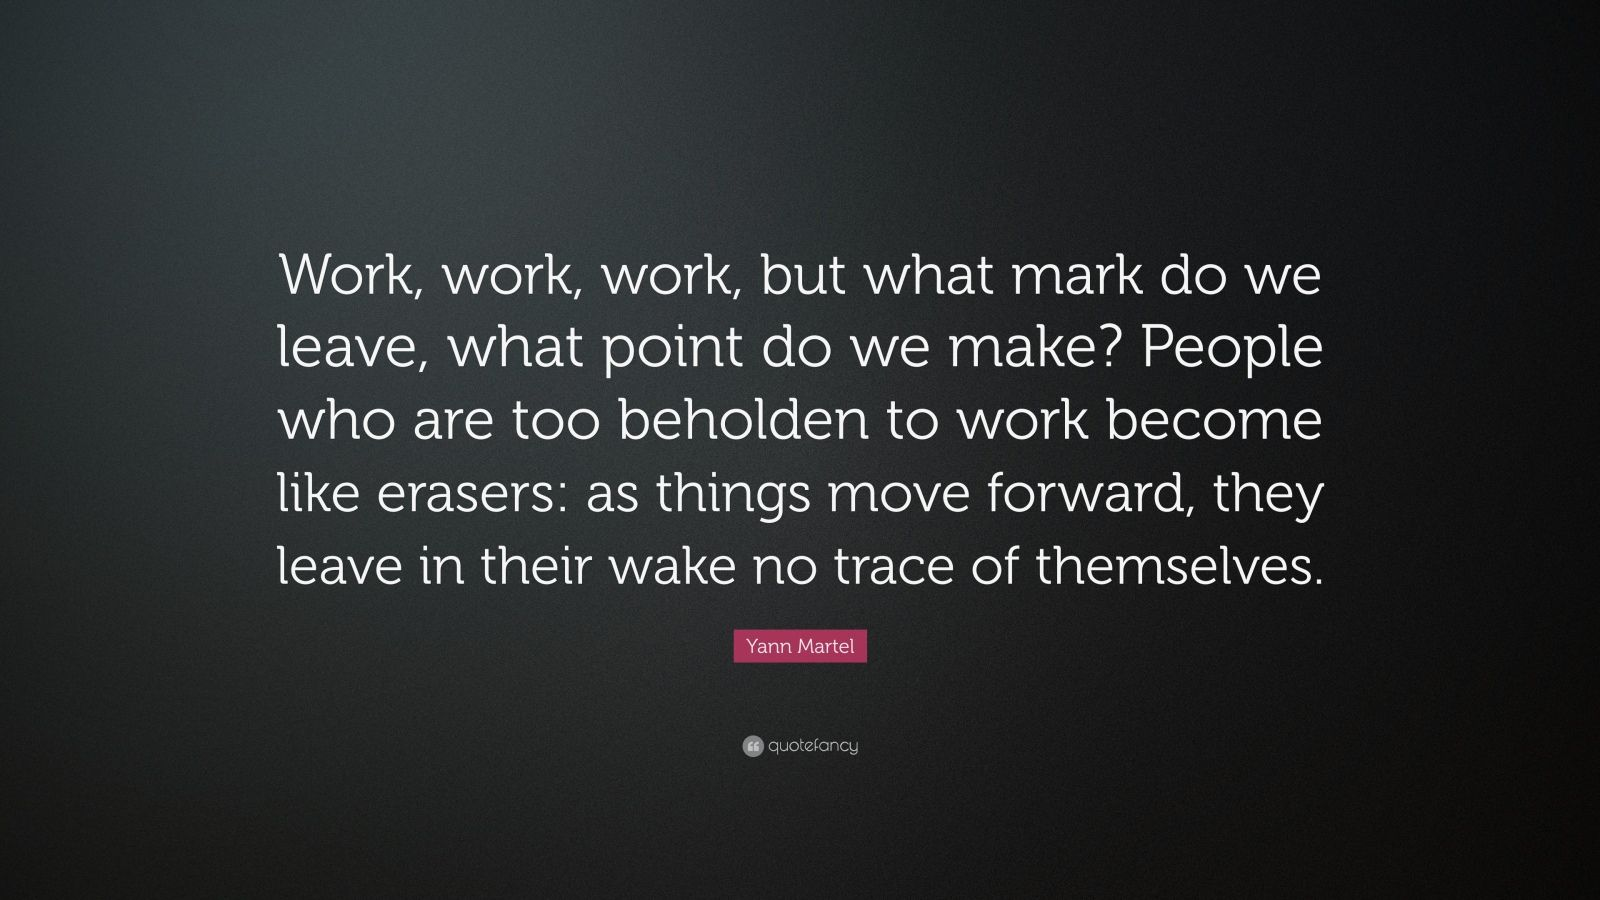 "Yann Martel Quote: ""Work, work, work, but what mark do we leave, what point do we make? People who are too beholden to work become like erasers: as things move forward, they leave in their wake no trace of themselves."""